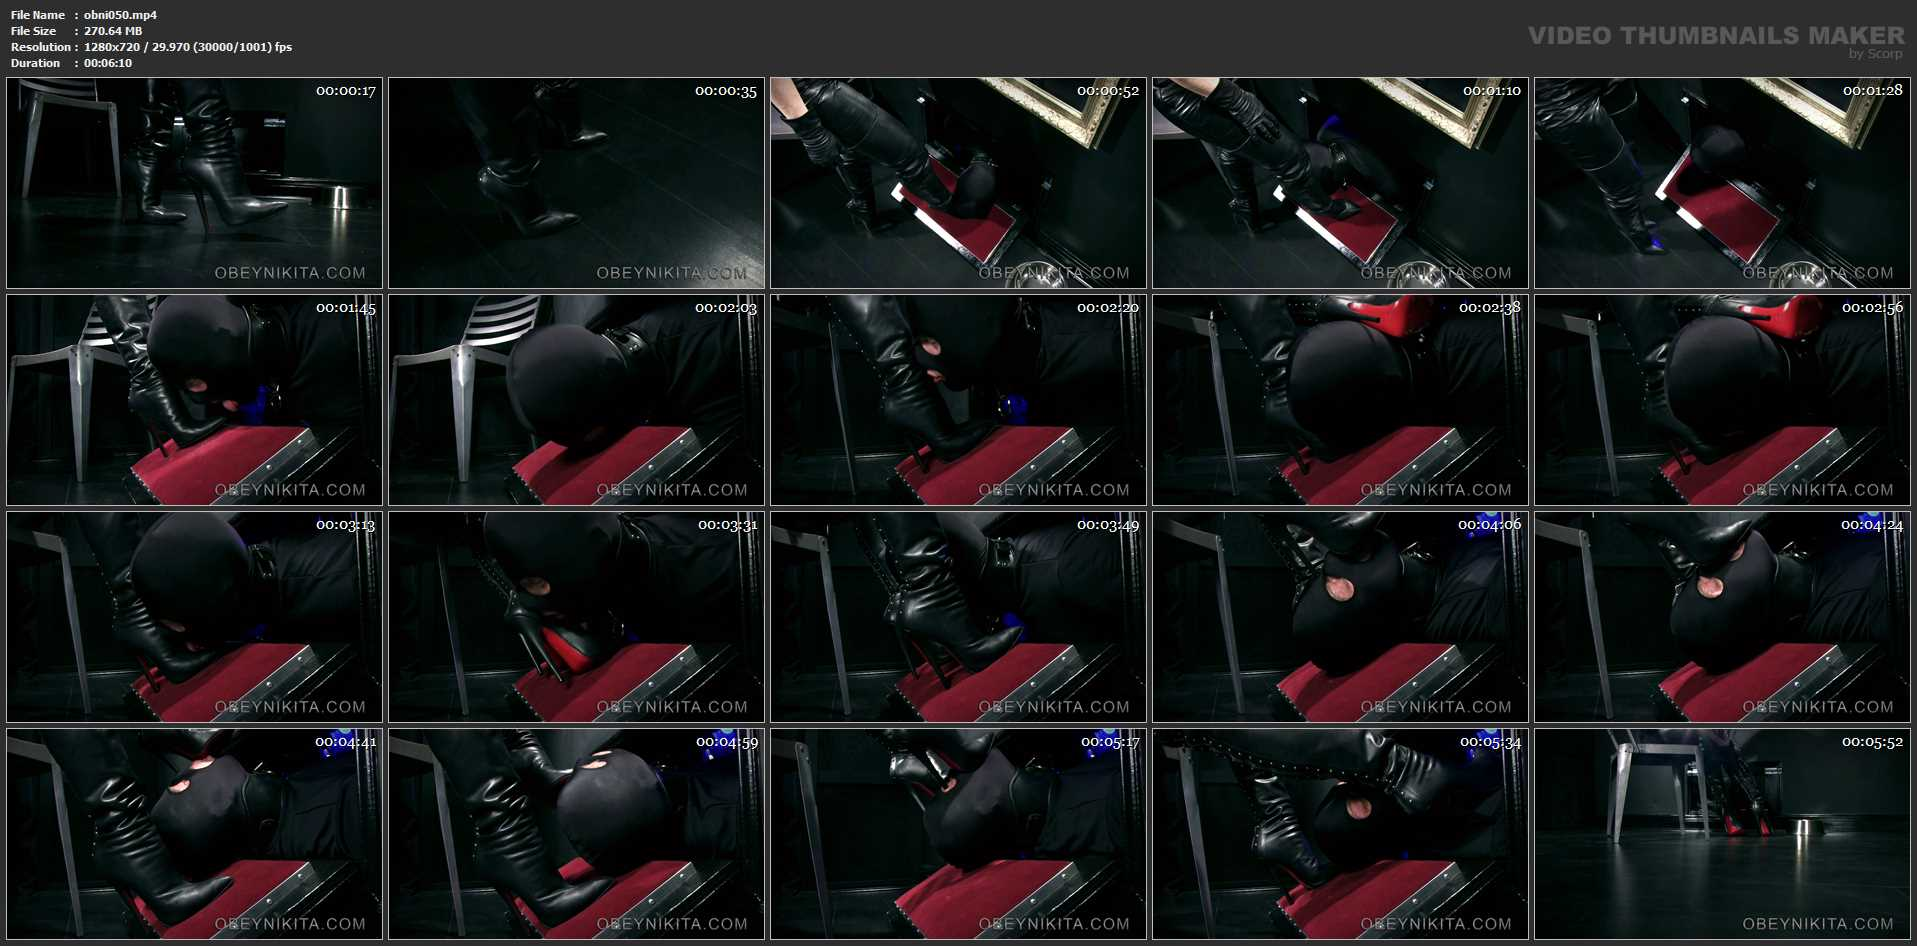 Mistress Nikita In Scene: Boot Hole - OBEYNIKITA - HD/720p/MP4